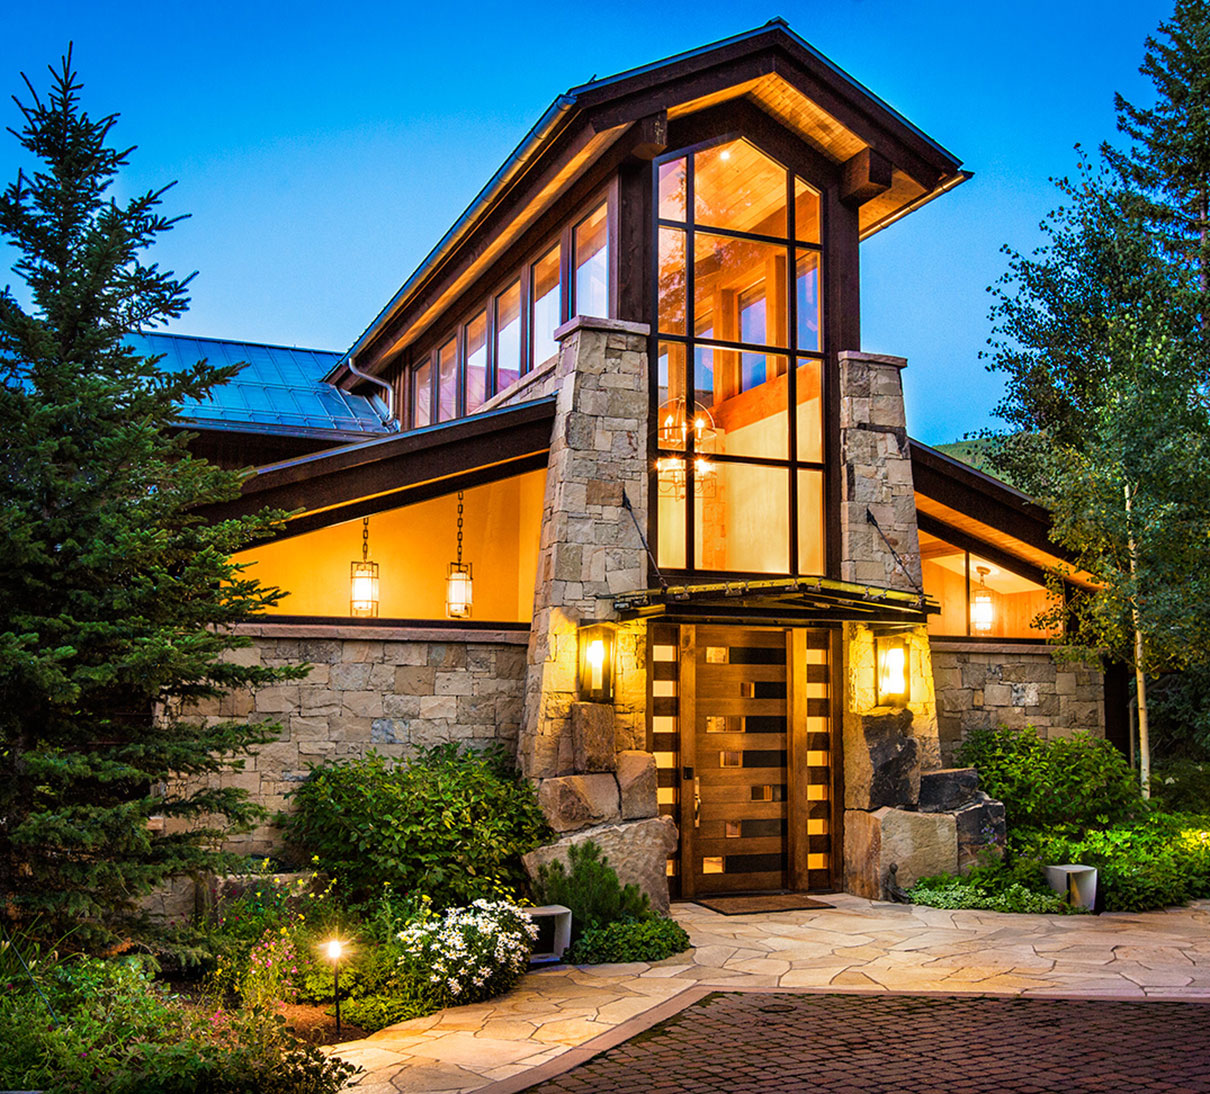 Luxury home on the Ski Slopes of Vail, Colorado